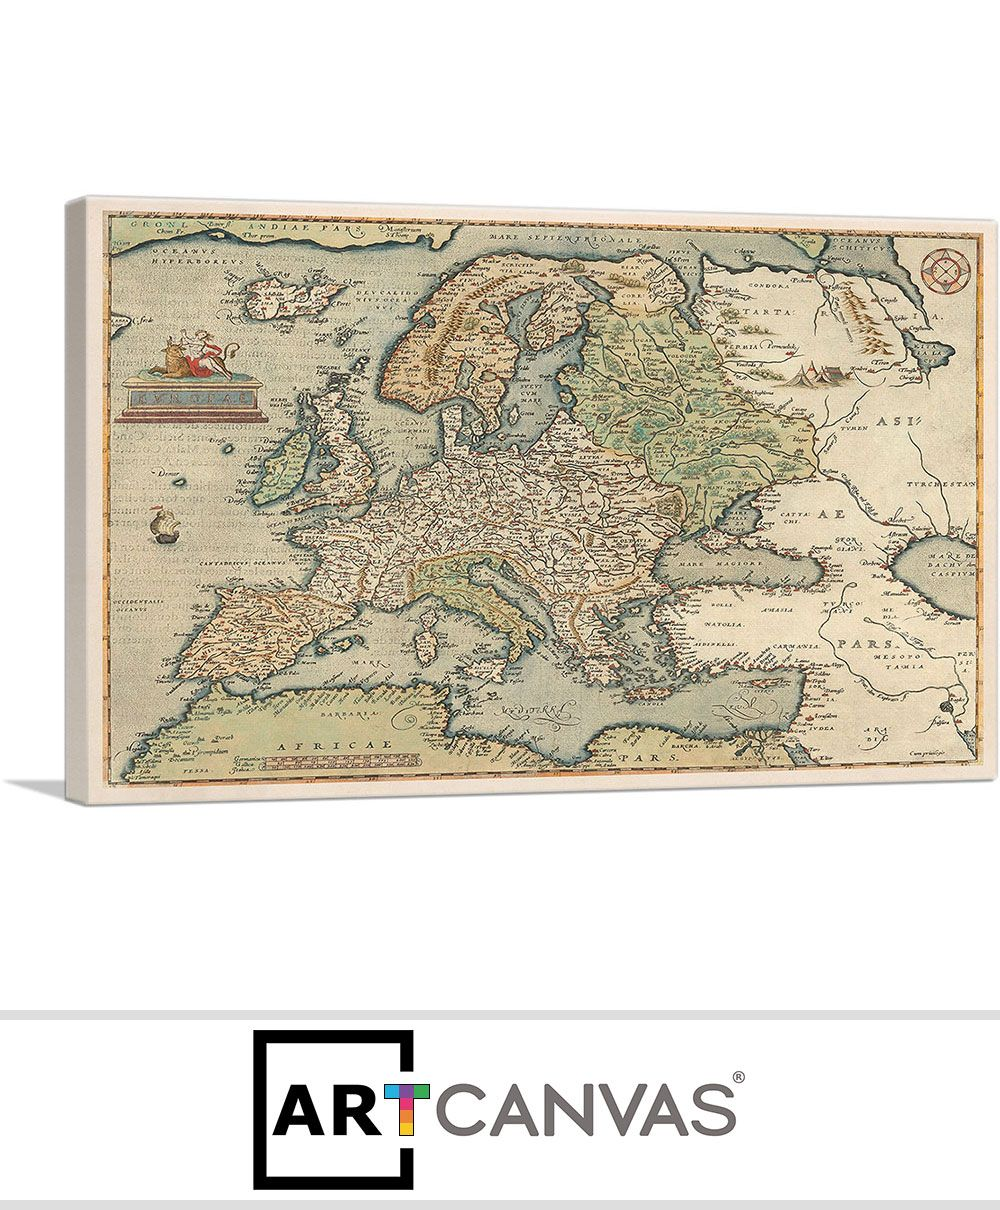 Map Of Europe For Sale.Map Of Europe 1581 Canvas Art Print For Sale Artcanvas Com